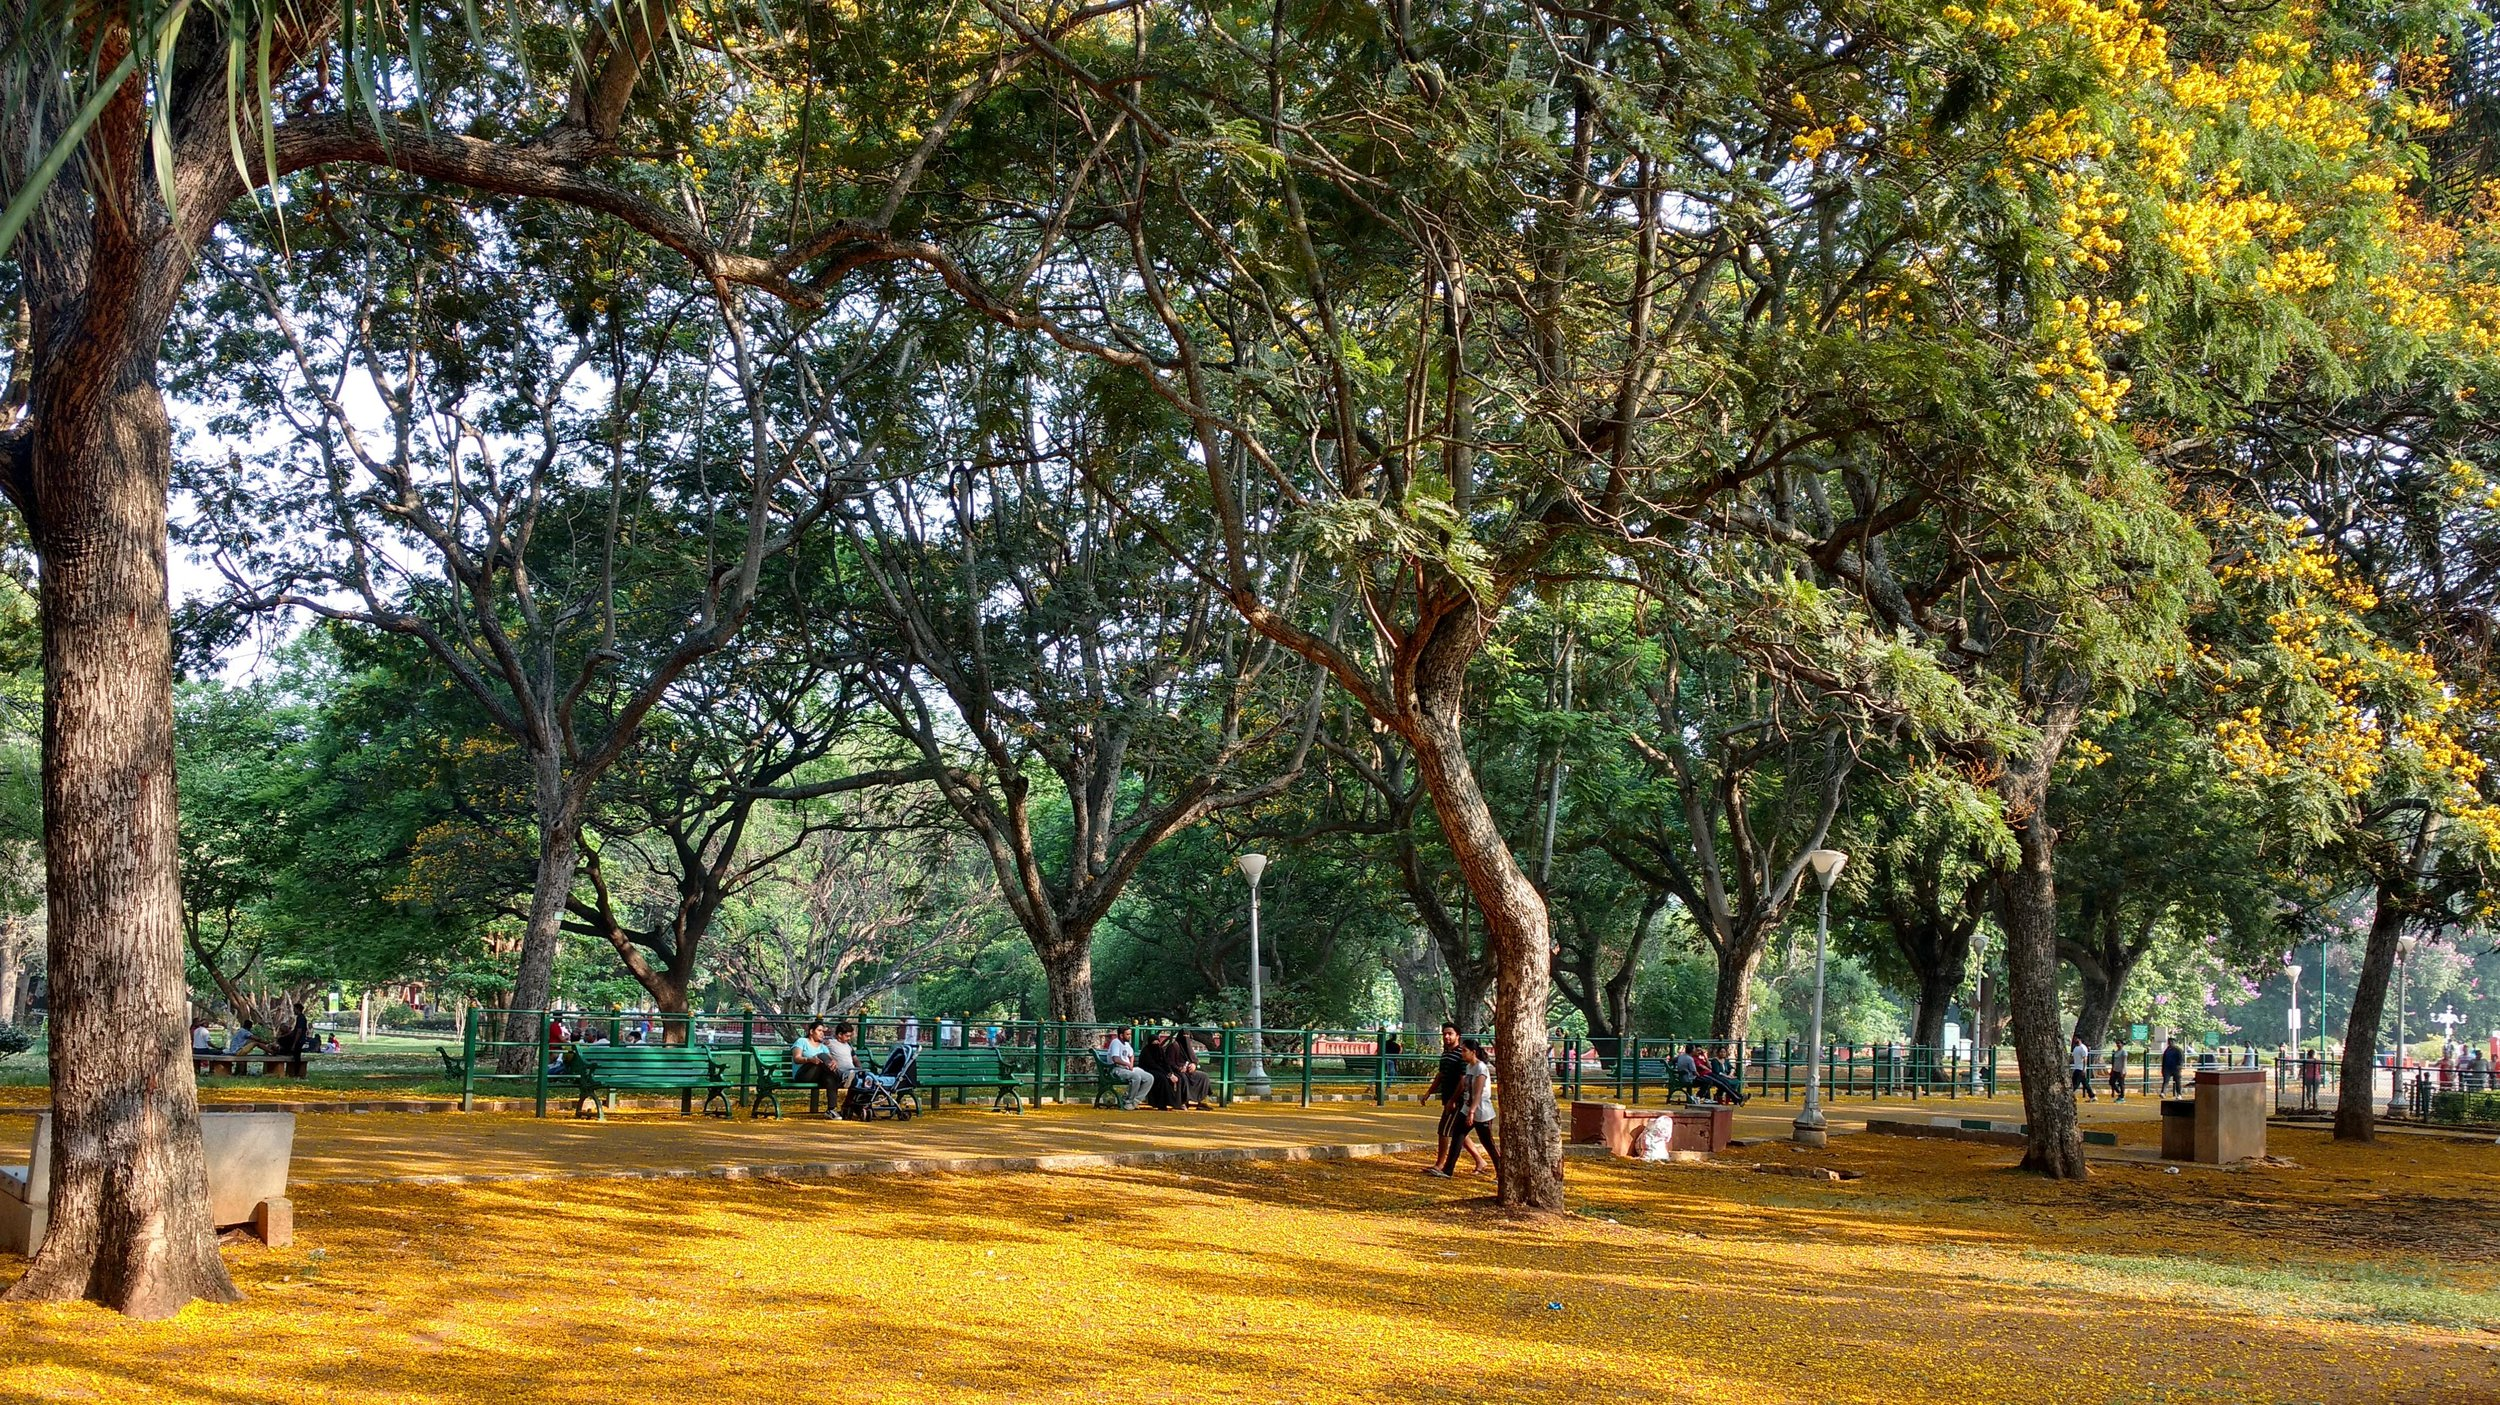 Lalbagh Botanical gardens today